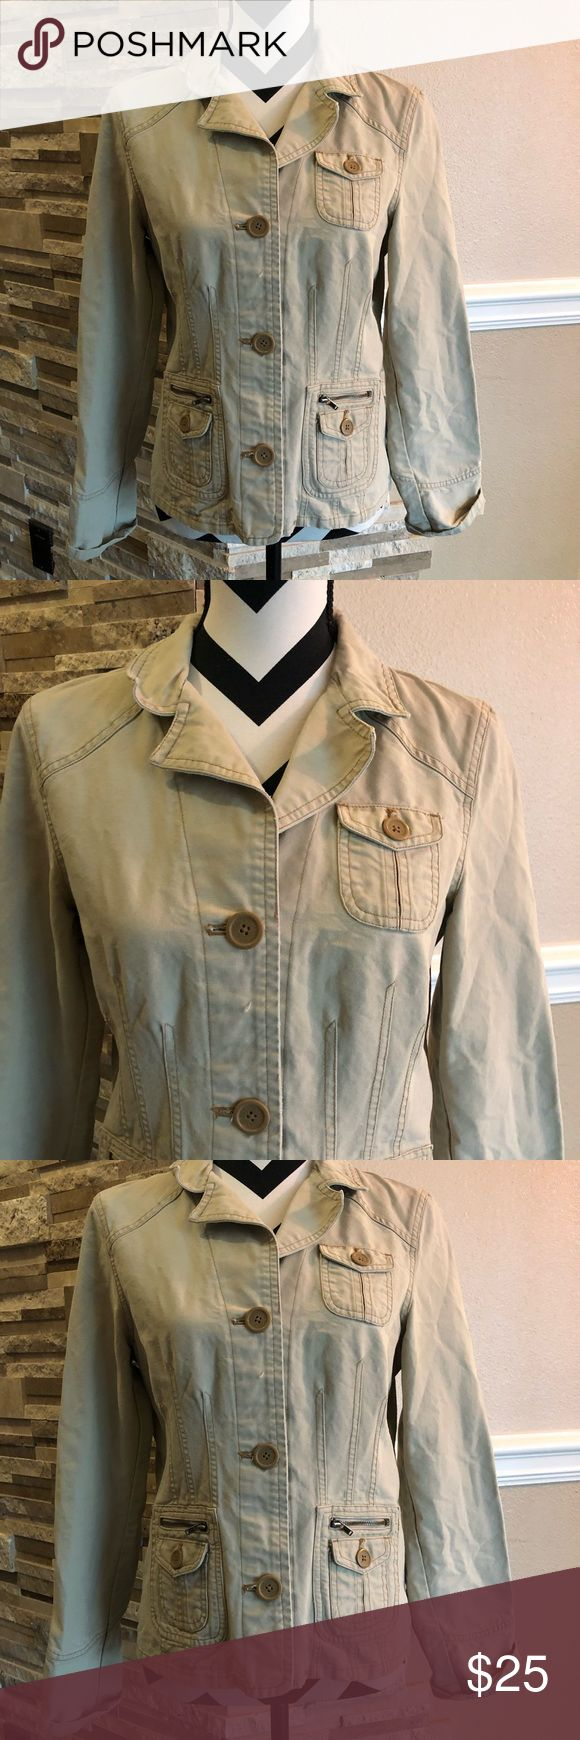 American Eagles Outfitters Khaki Jacket Good condition American Eagle Outfitters Jackets & Coats